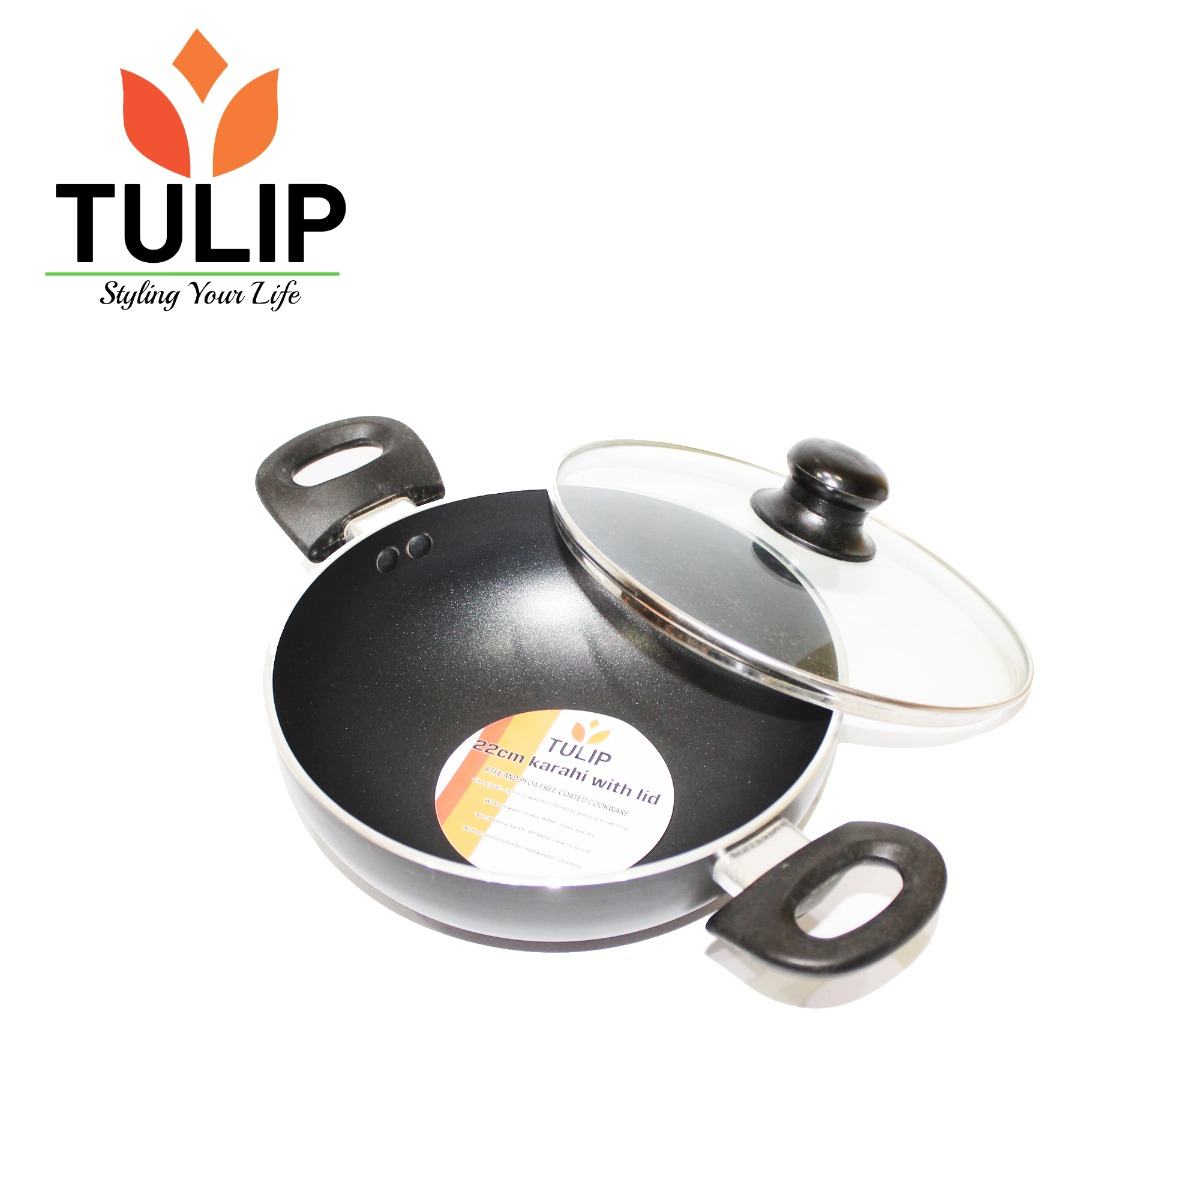 TULIP 22CM Non Stick Kadhai With Glass Lid - Black